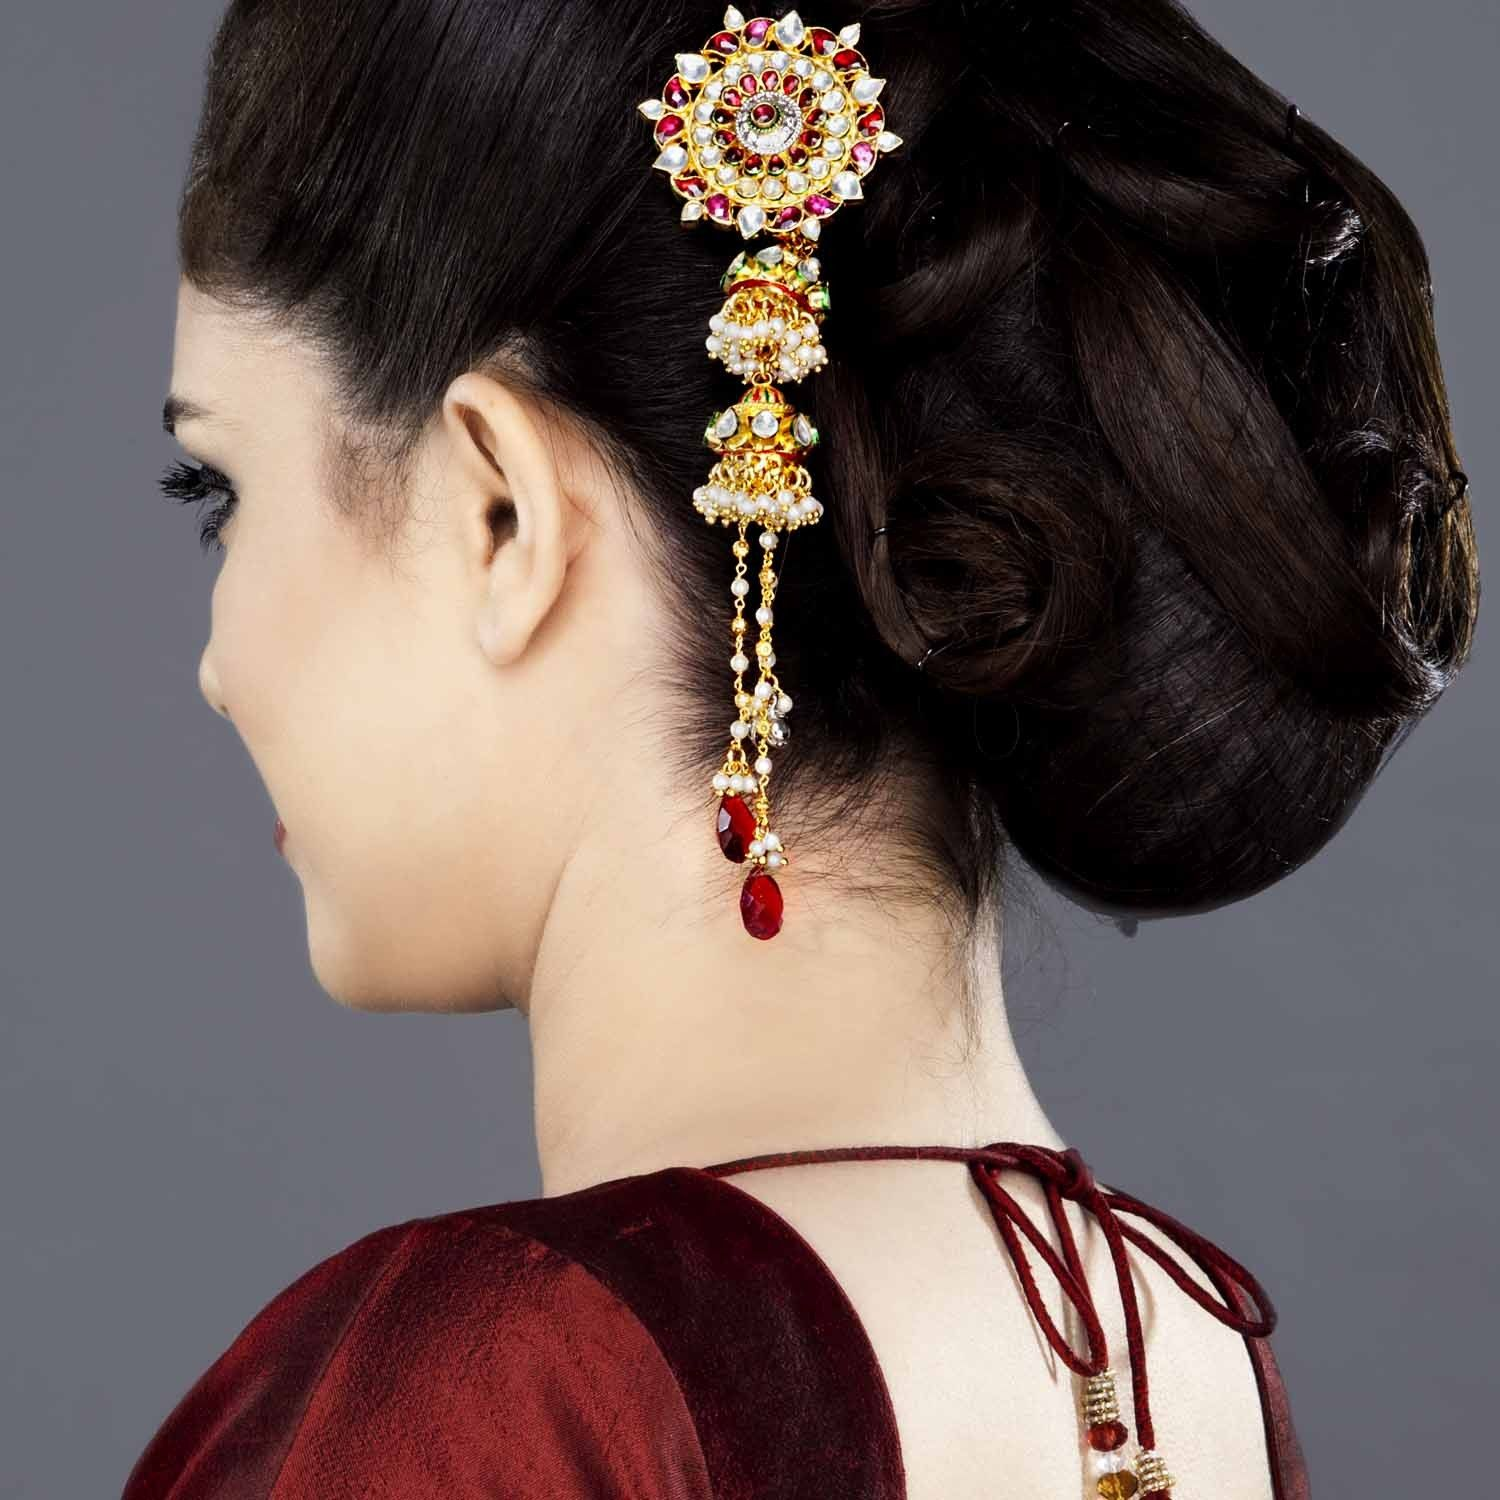 Bridal accessories on pinterest 86 pins - Featuring This Beautiful Kundan Jadau Juda Pin In Our Wide Range Of Hair Accessories